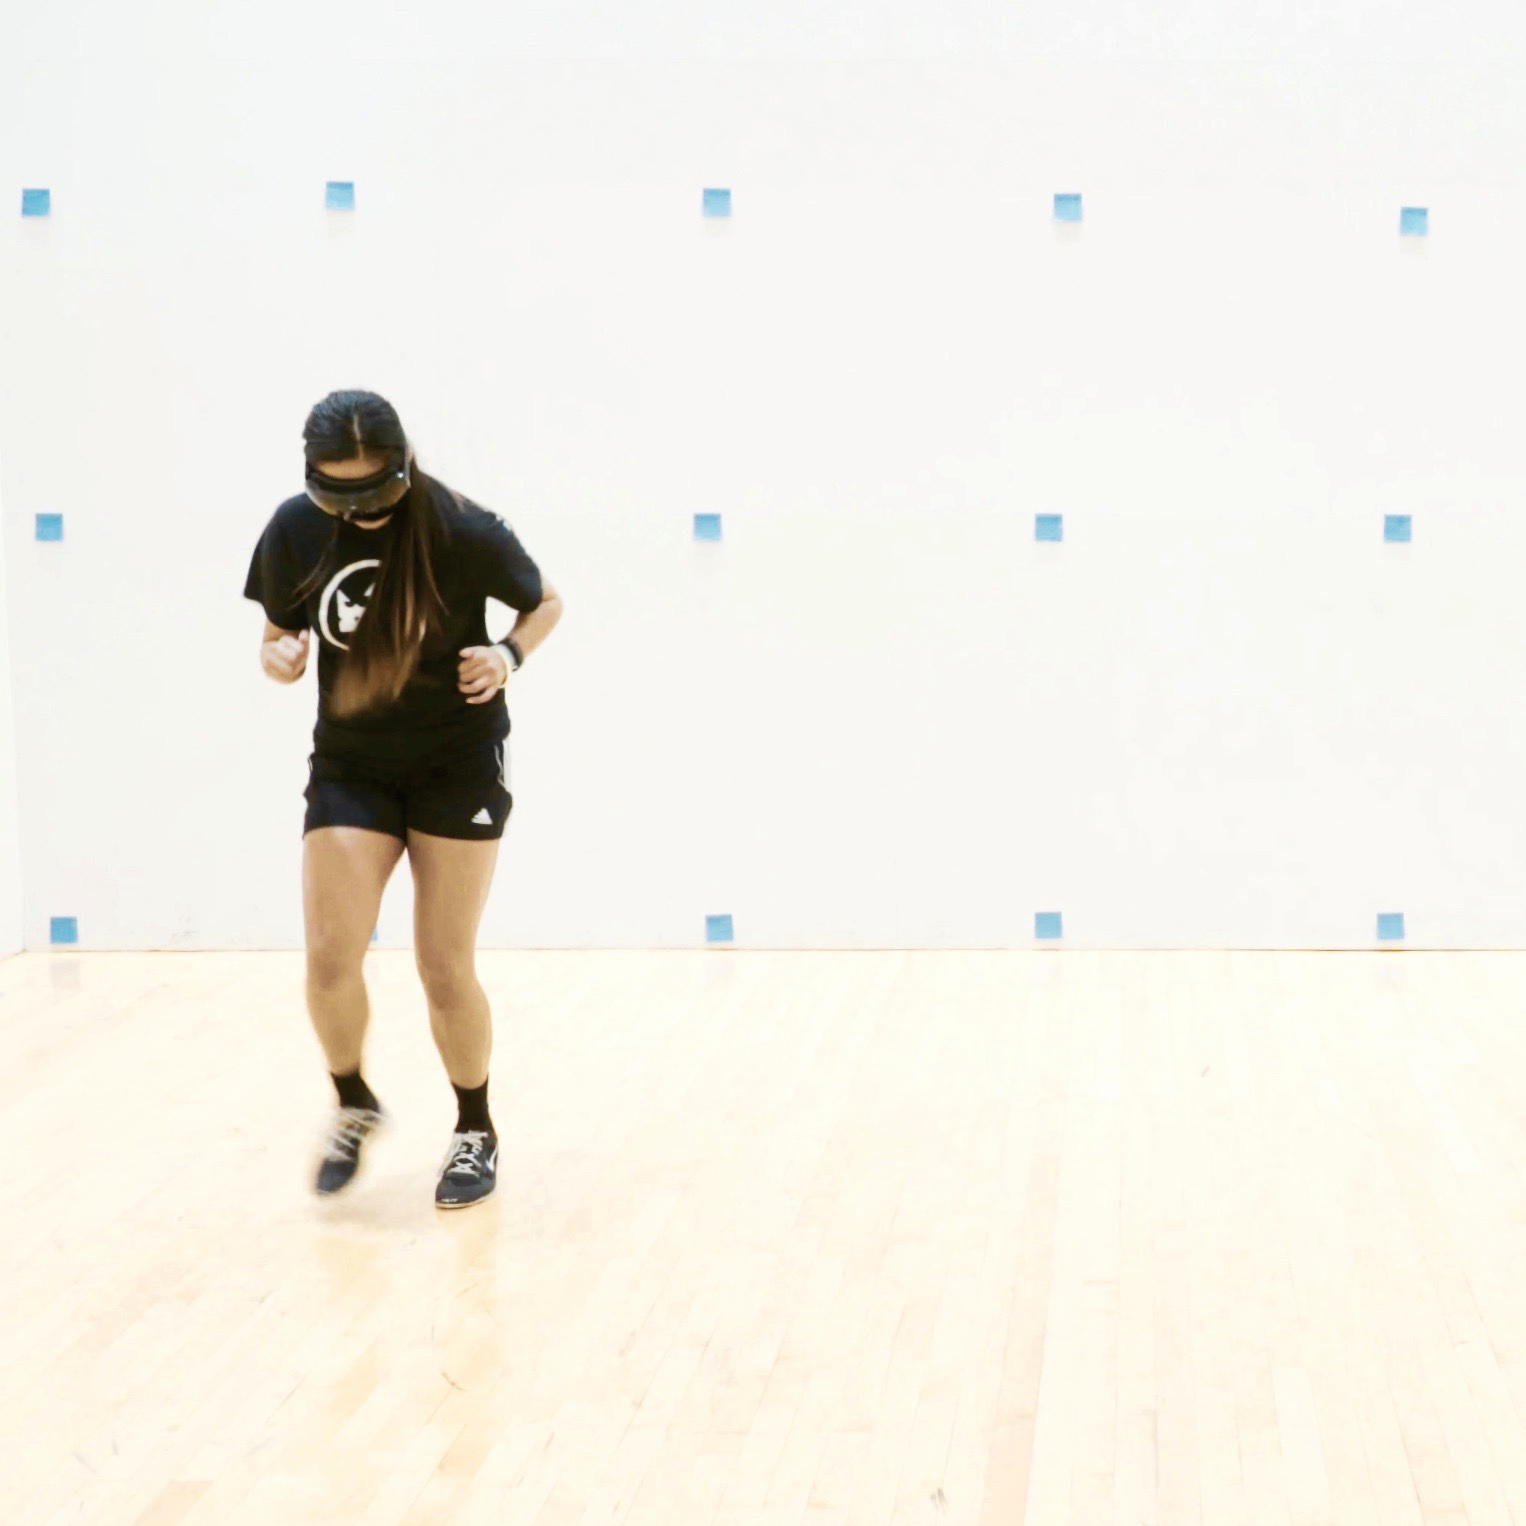 sports rehab augmented reality